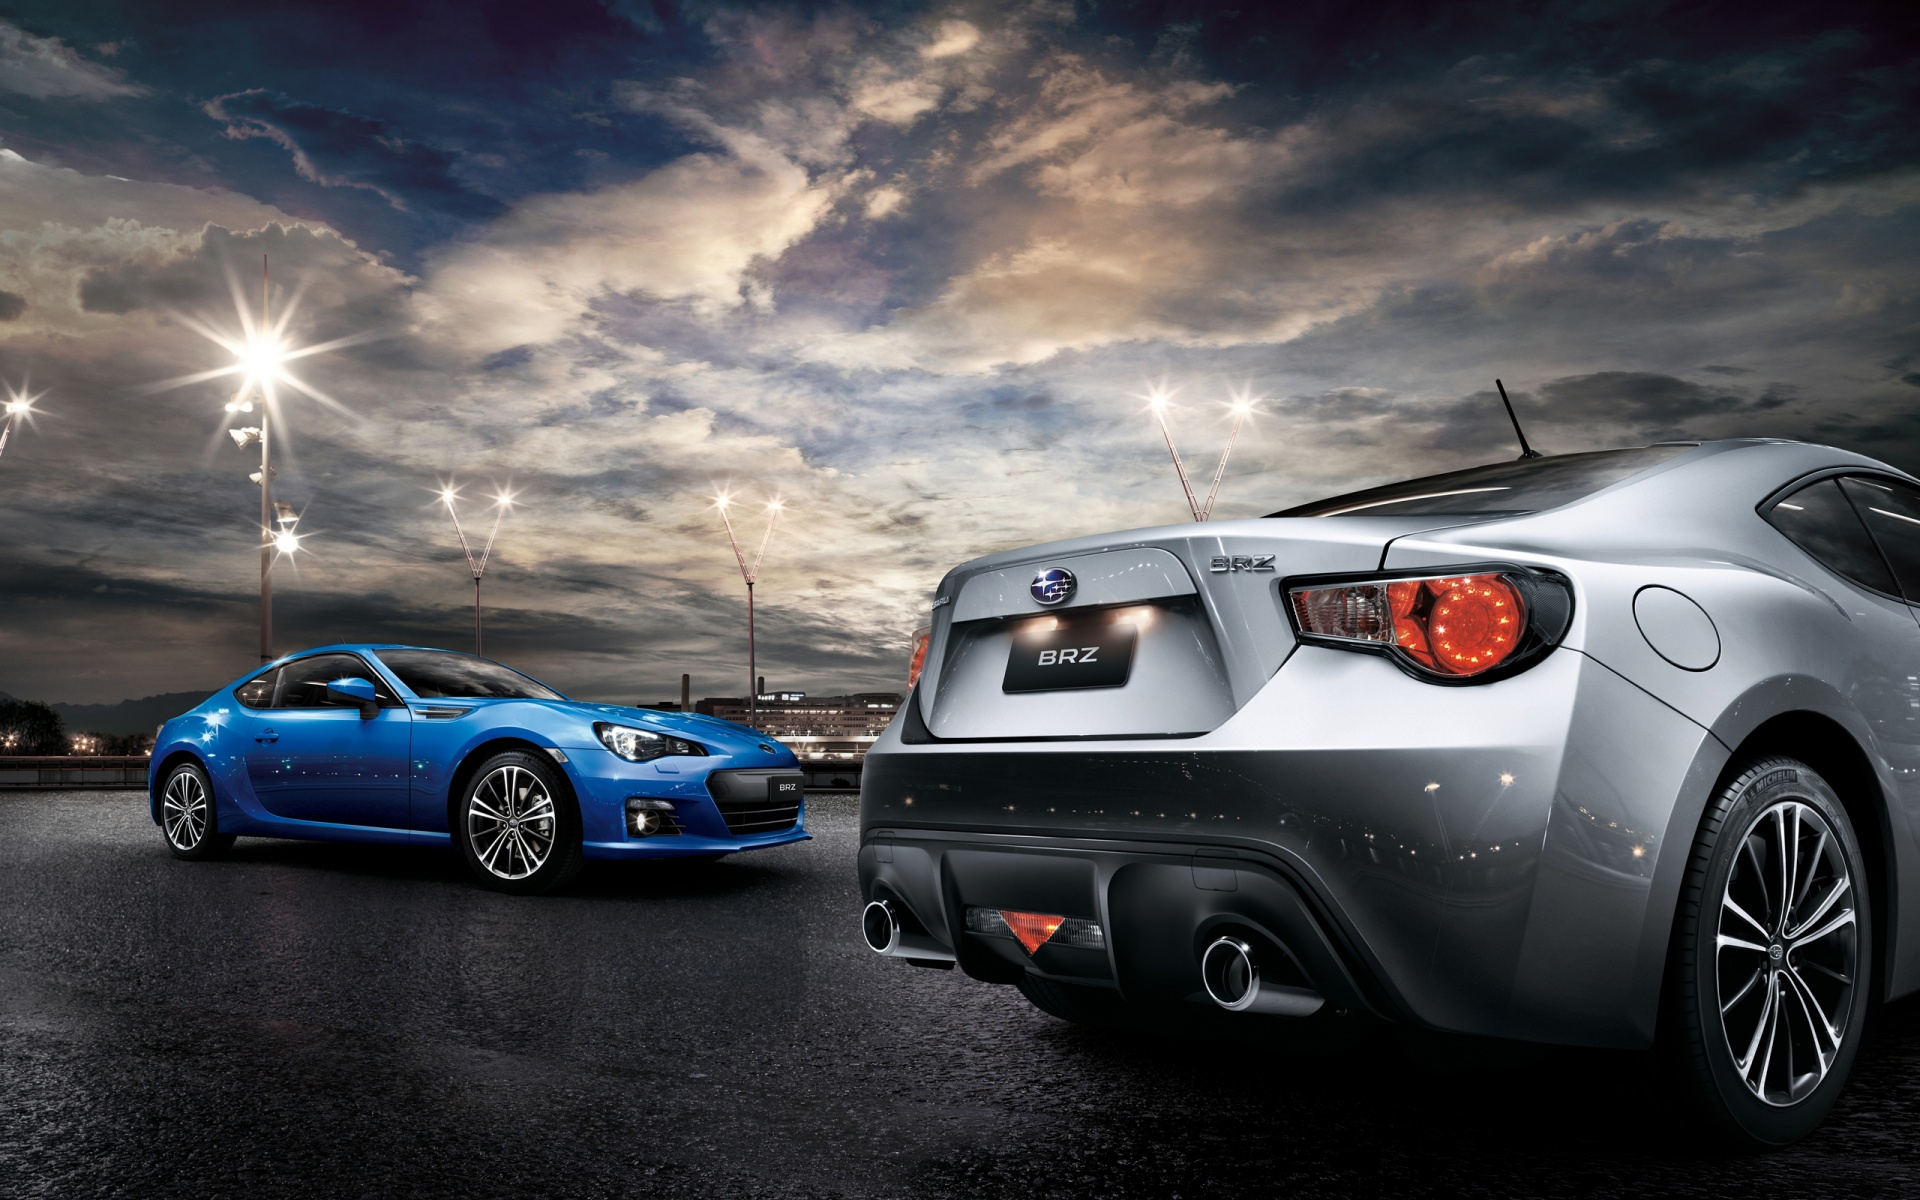 Hd Wallpapers Subaru Brz Hd Quality From Hd Only Subaru Brz 1600 X Reviewed by Car Wallpapers on 3rd July 2015 . Article about Hd Wallpapers Subaru Brz Hd ...